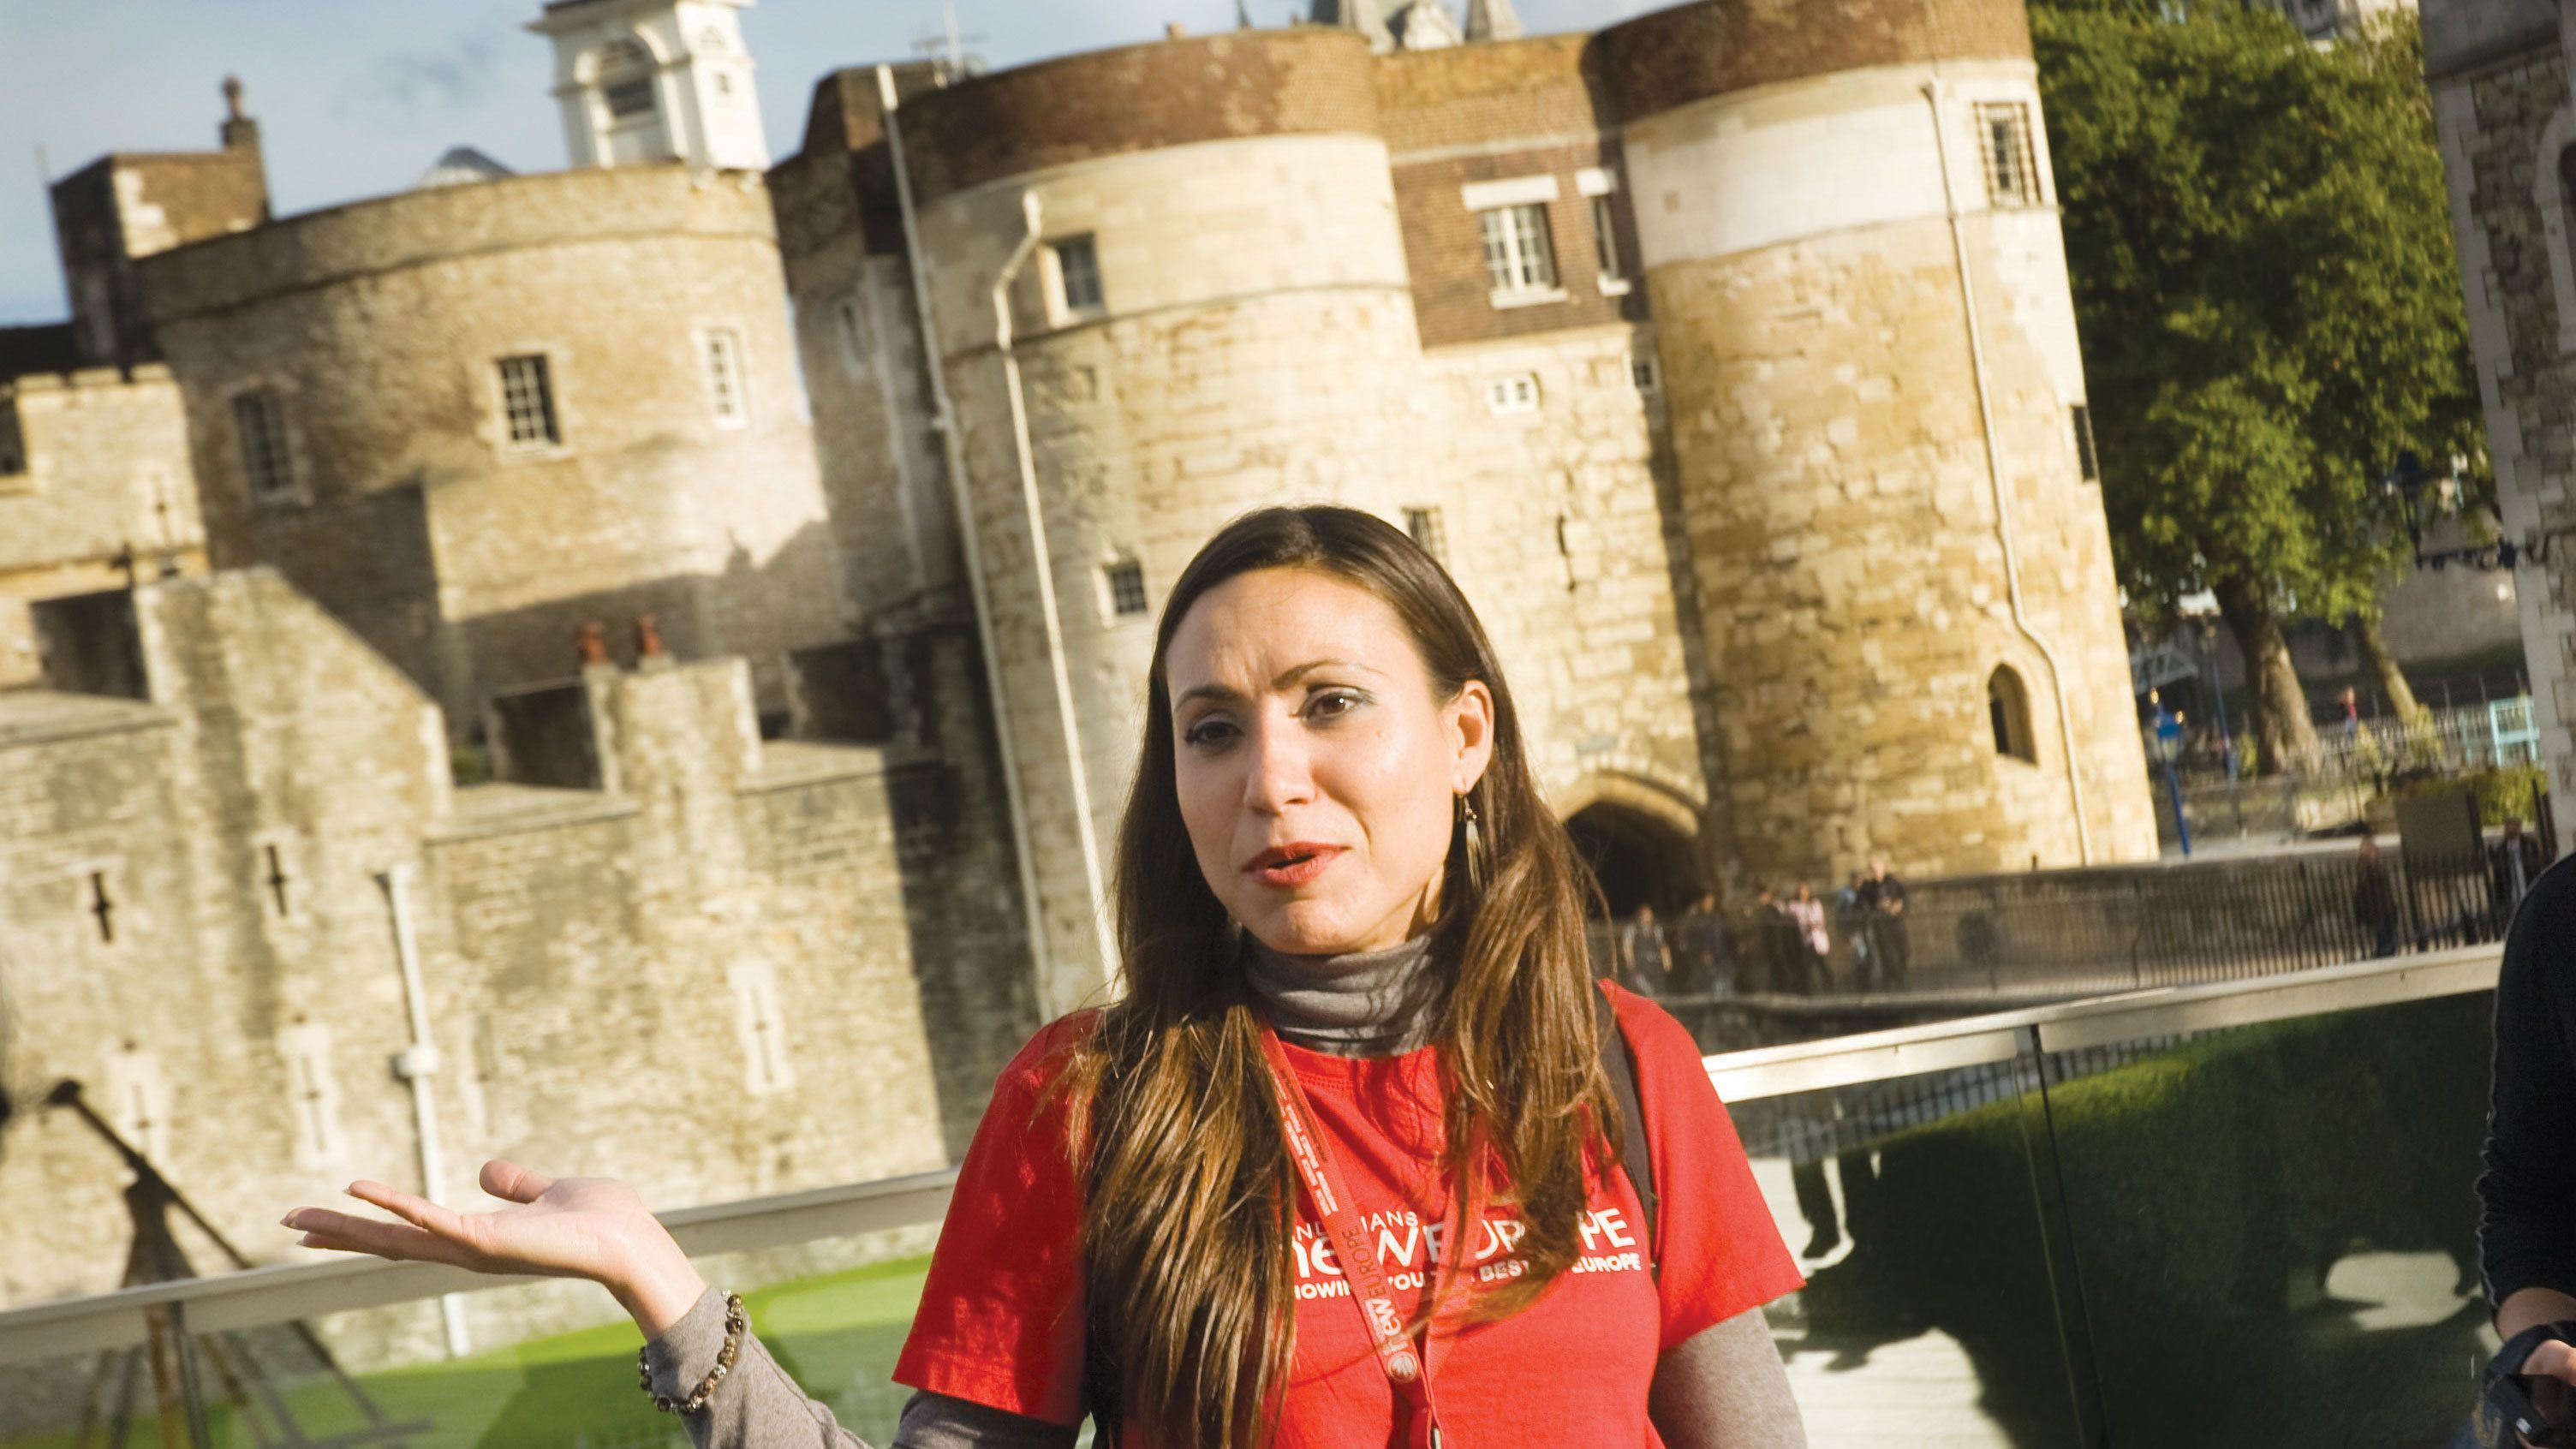 tour guide in front of lion tower of London